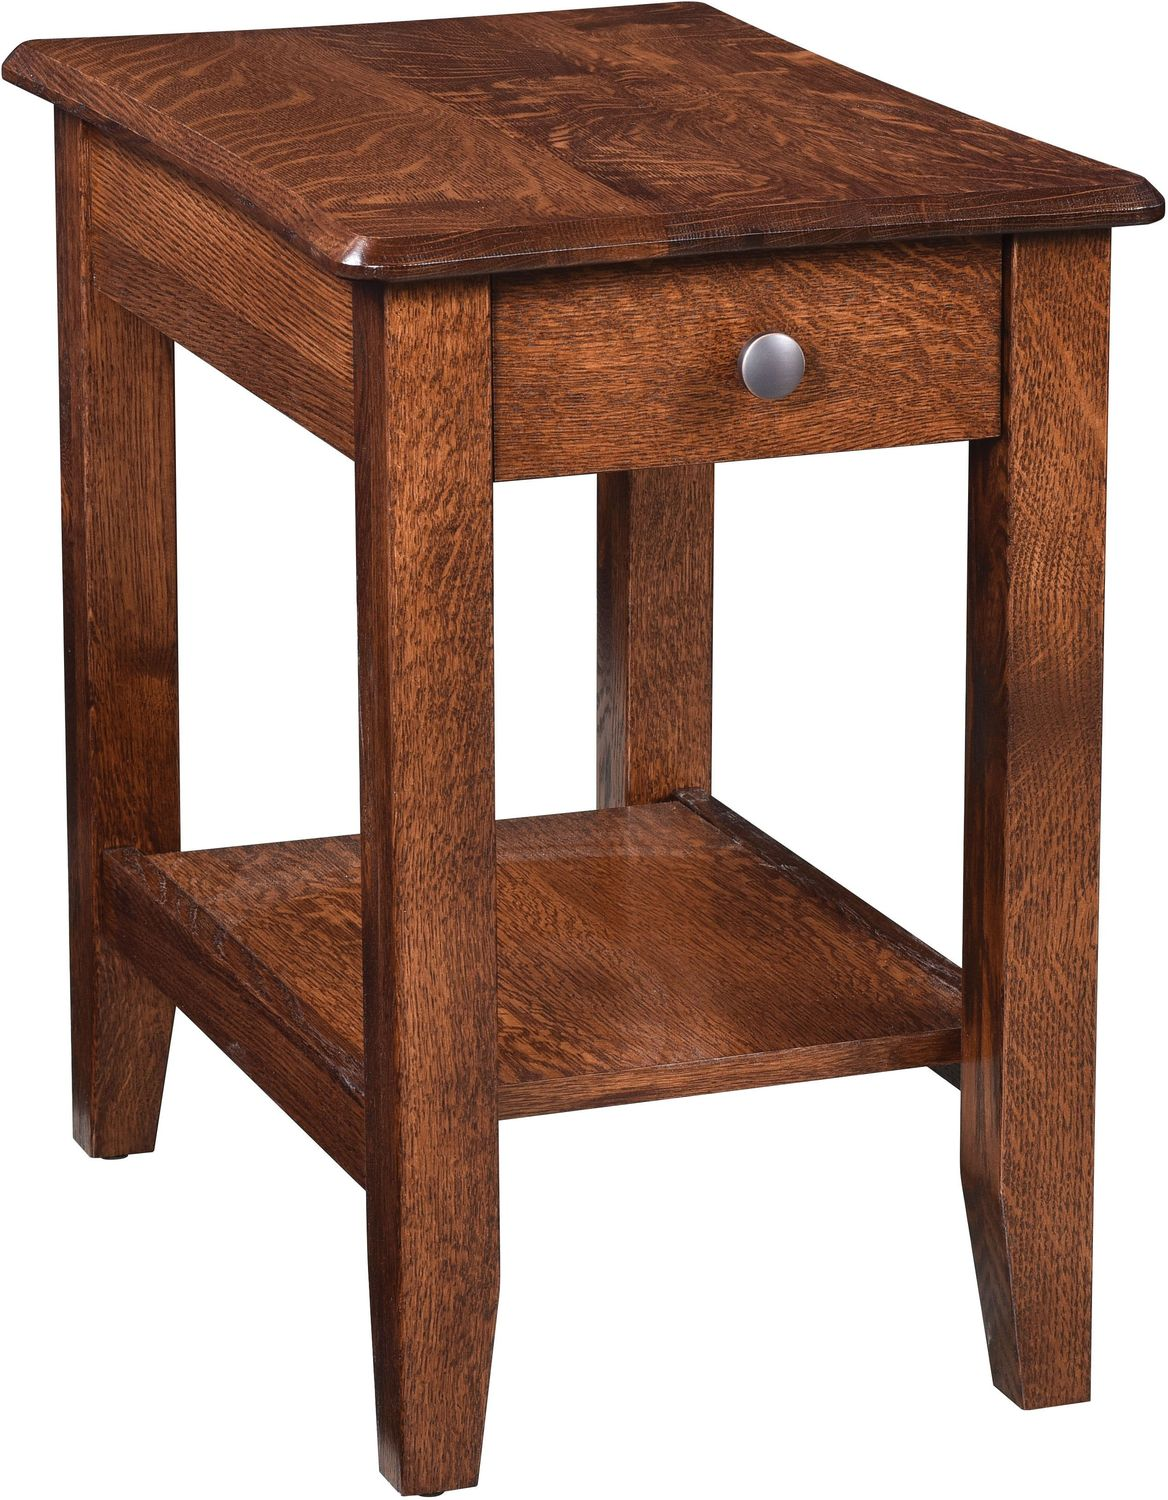 bunker hill chairside table rustic oak levin furniture